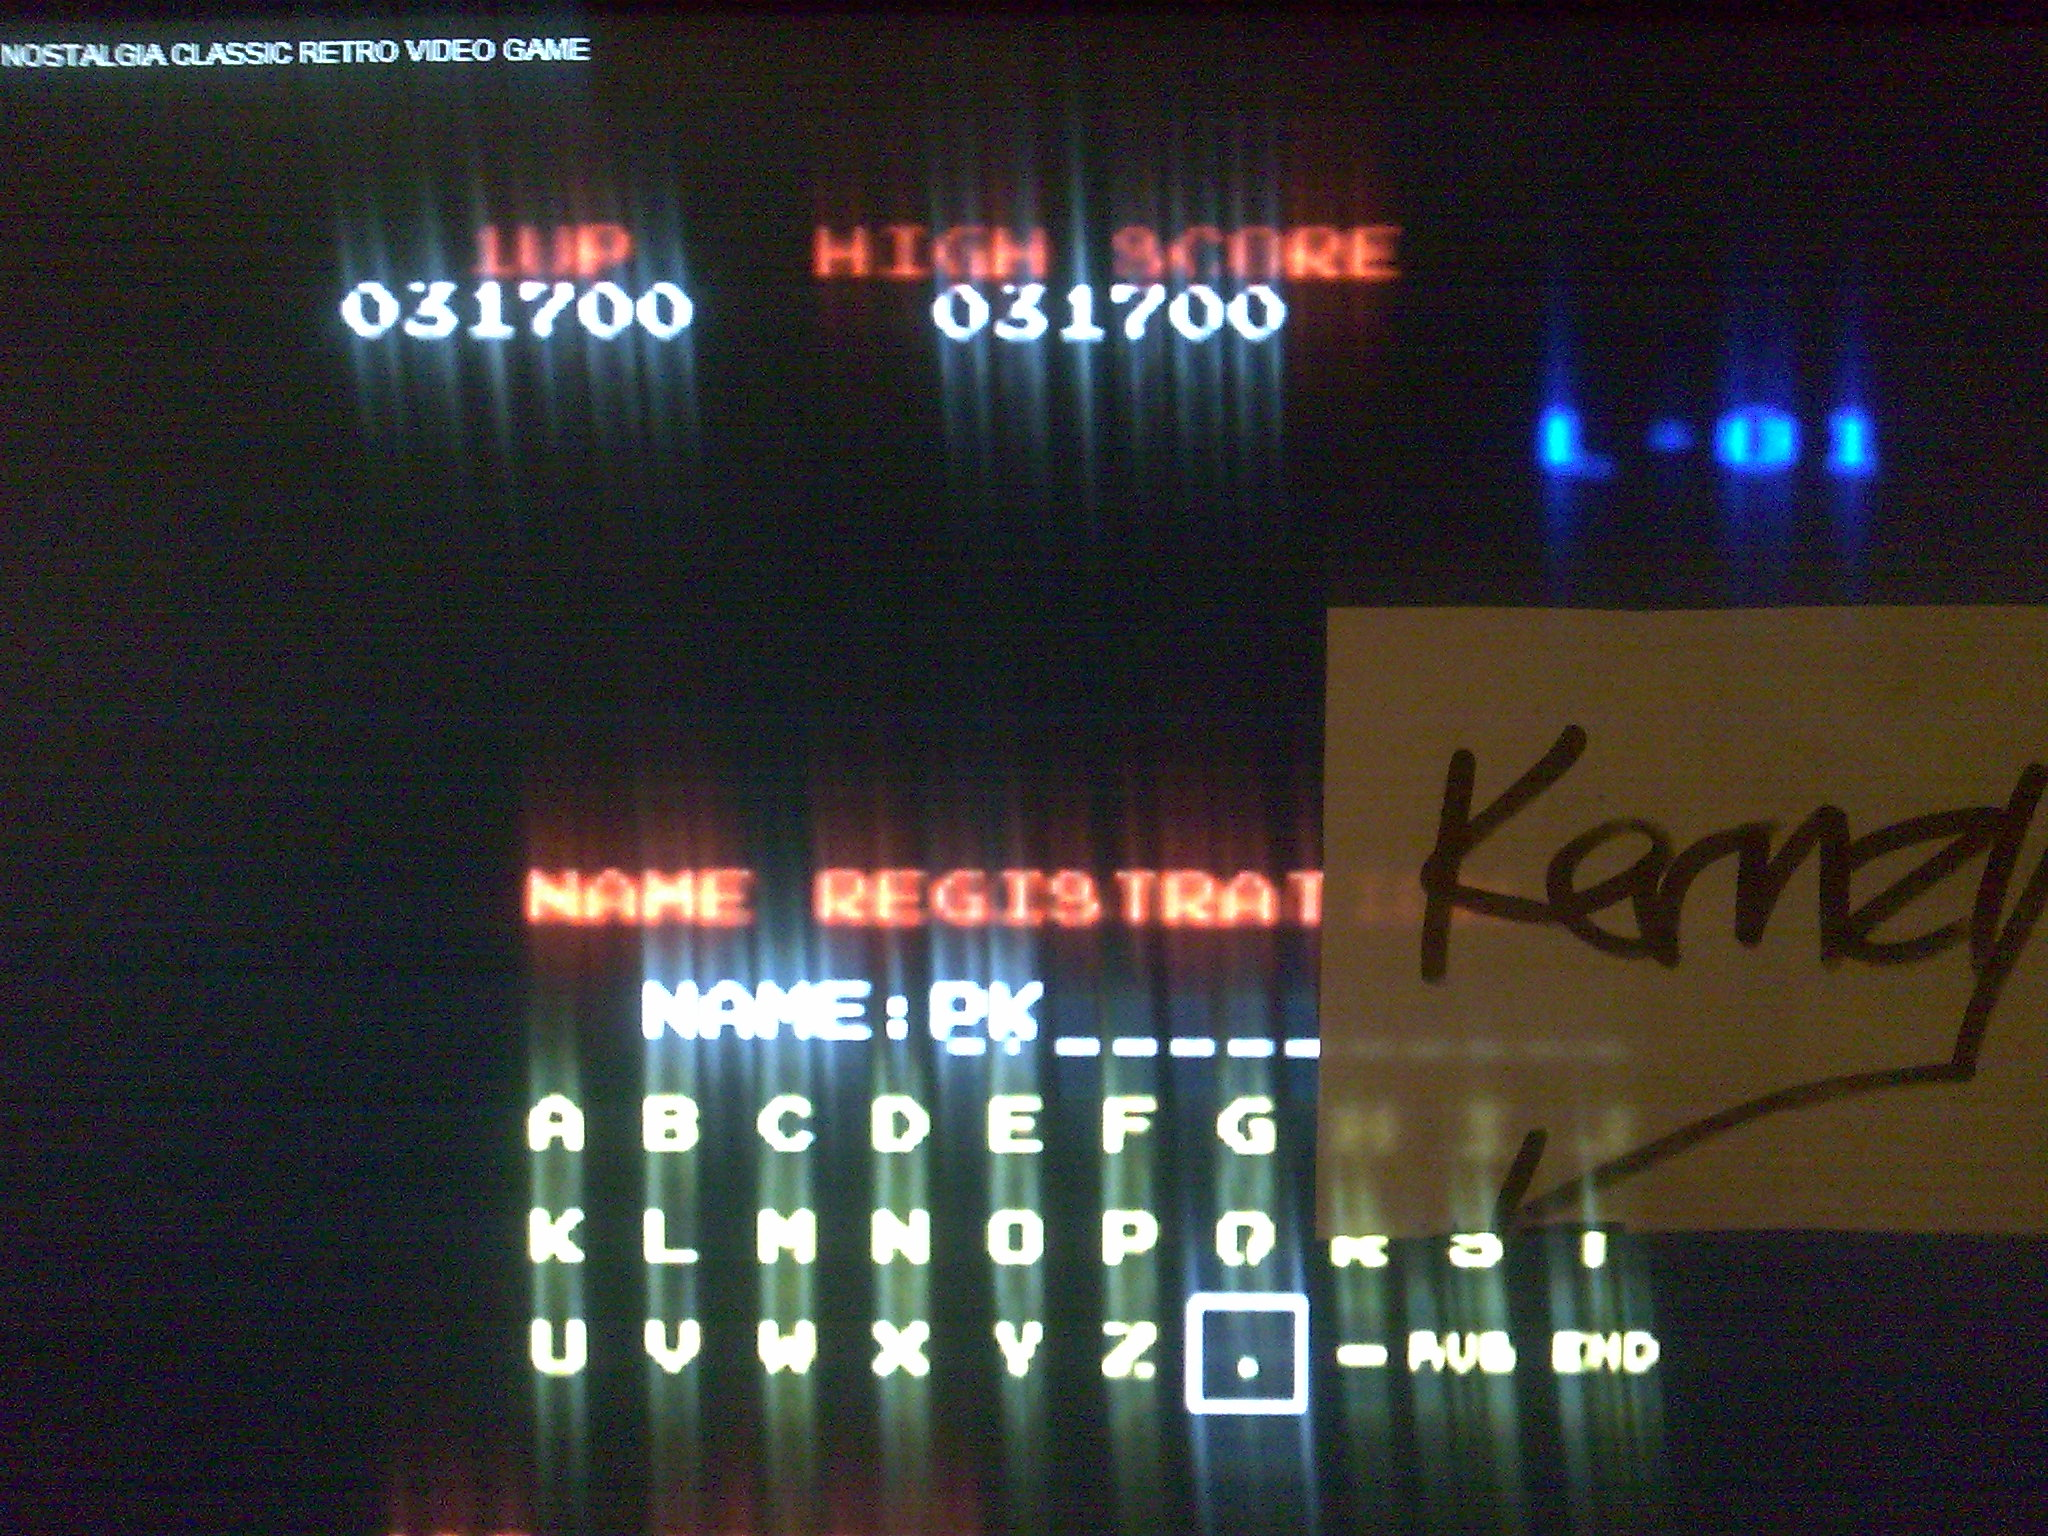 kernzy: Donkey Kong (Amstrad CPC Emulated) 31,700 points on 2014-08-24 00:16:03